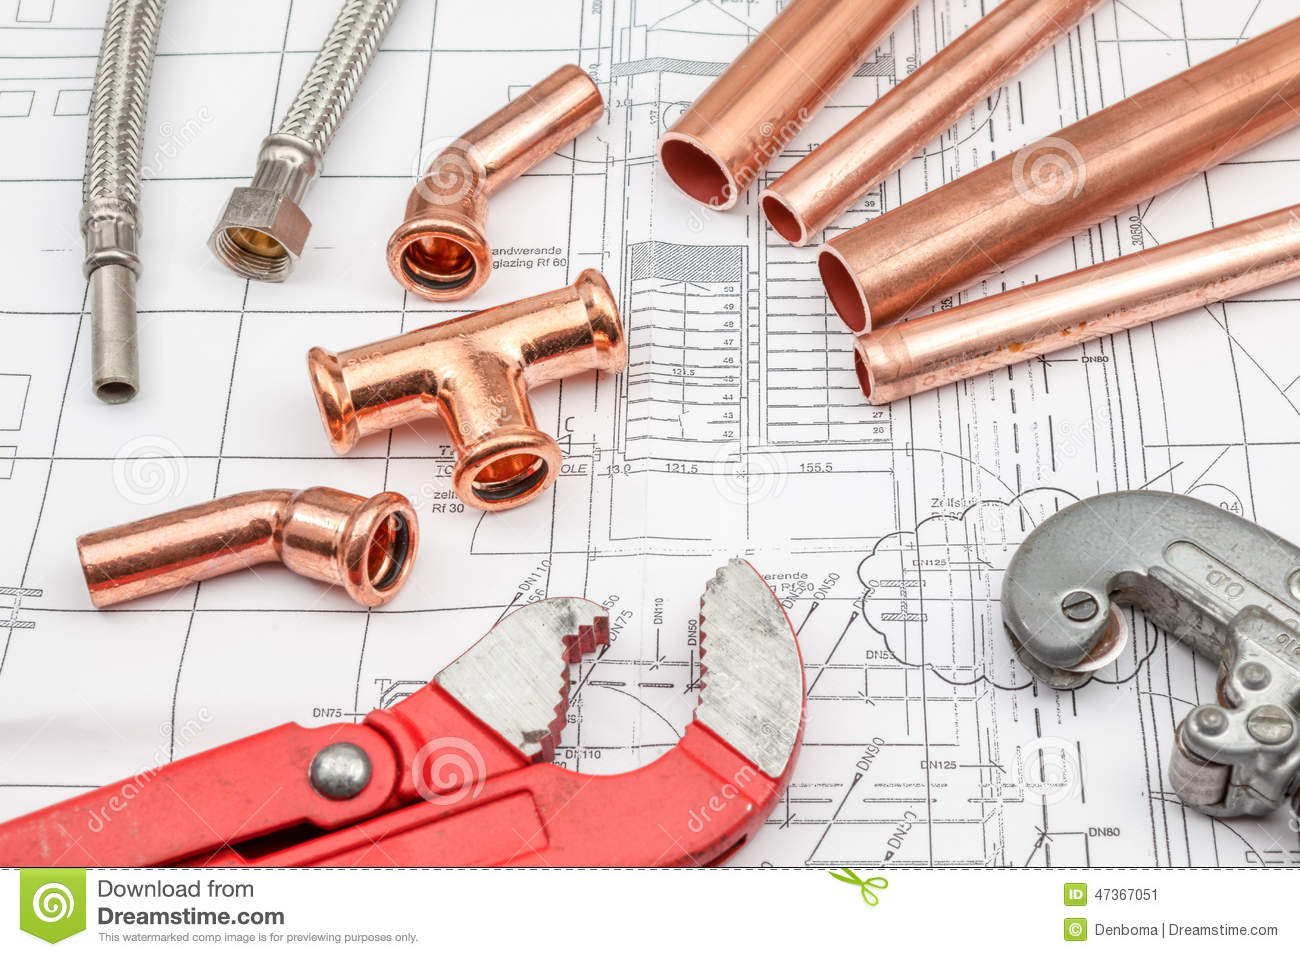 Plumbing tools arranged on house plans royalty free stock for Plumbing a new house